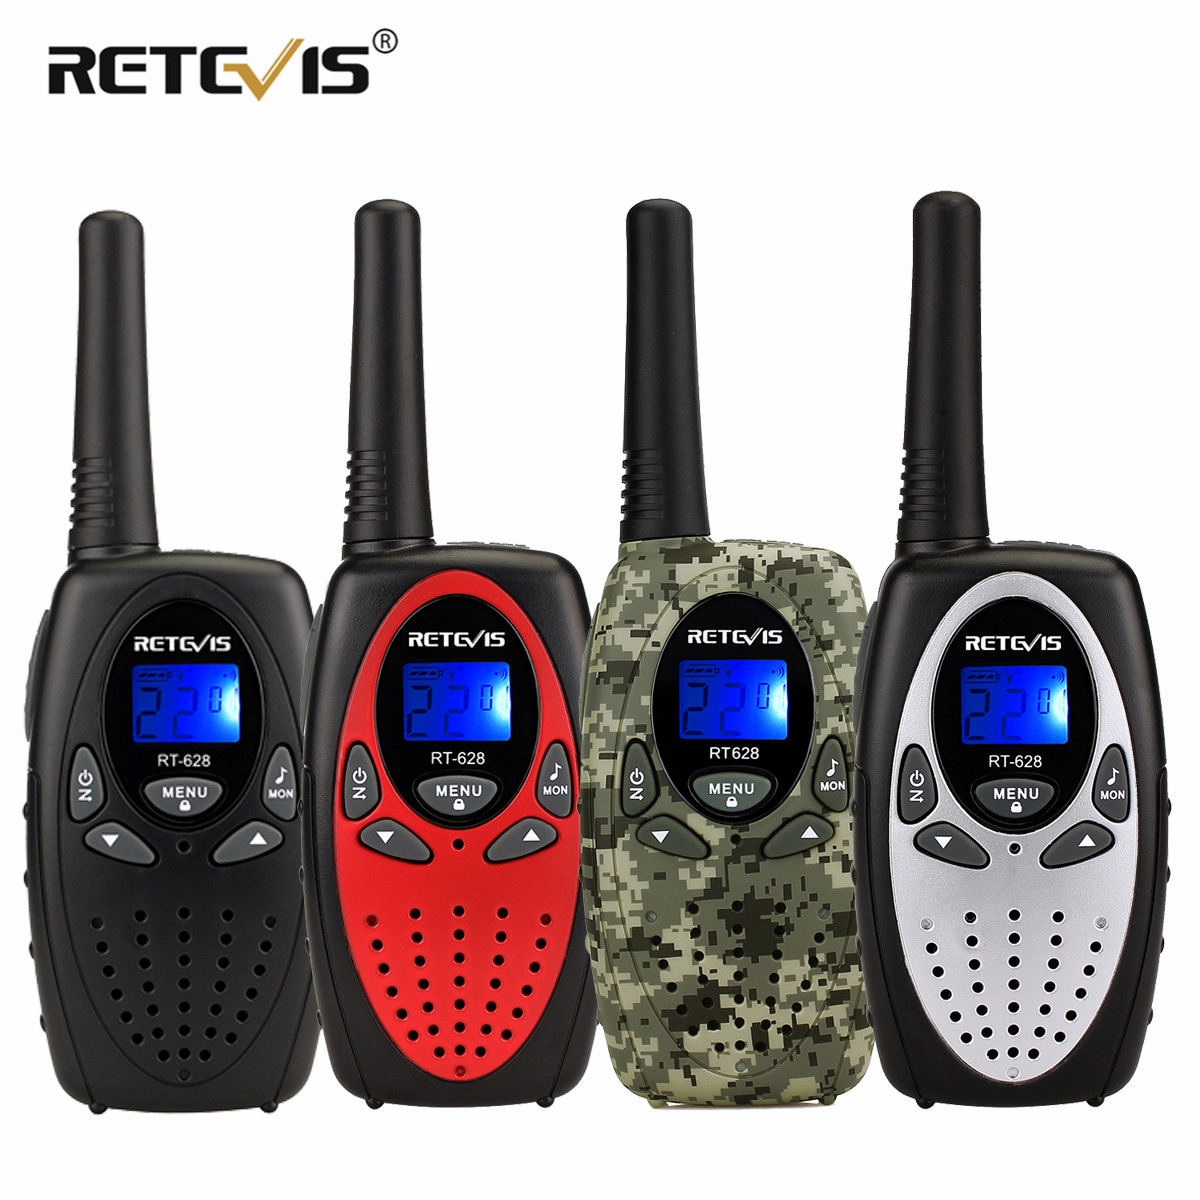 2pcs RETEVIS RT628 Mini Walkie Talkie Kids Radio 0.5W UHF Frequency Portable Radio Station Handheld Radio Gift(China)